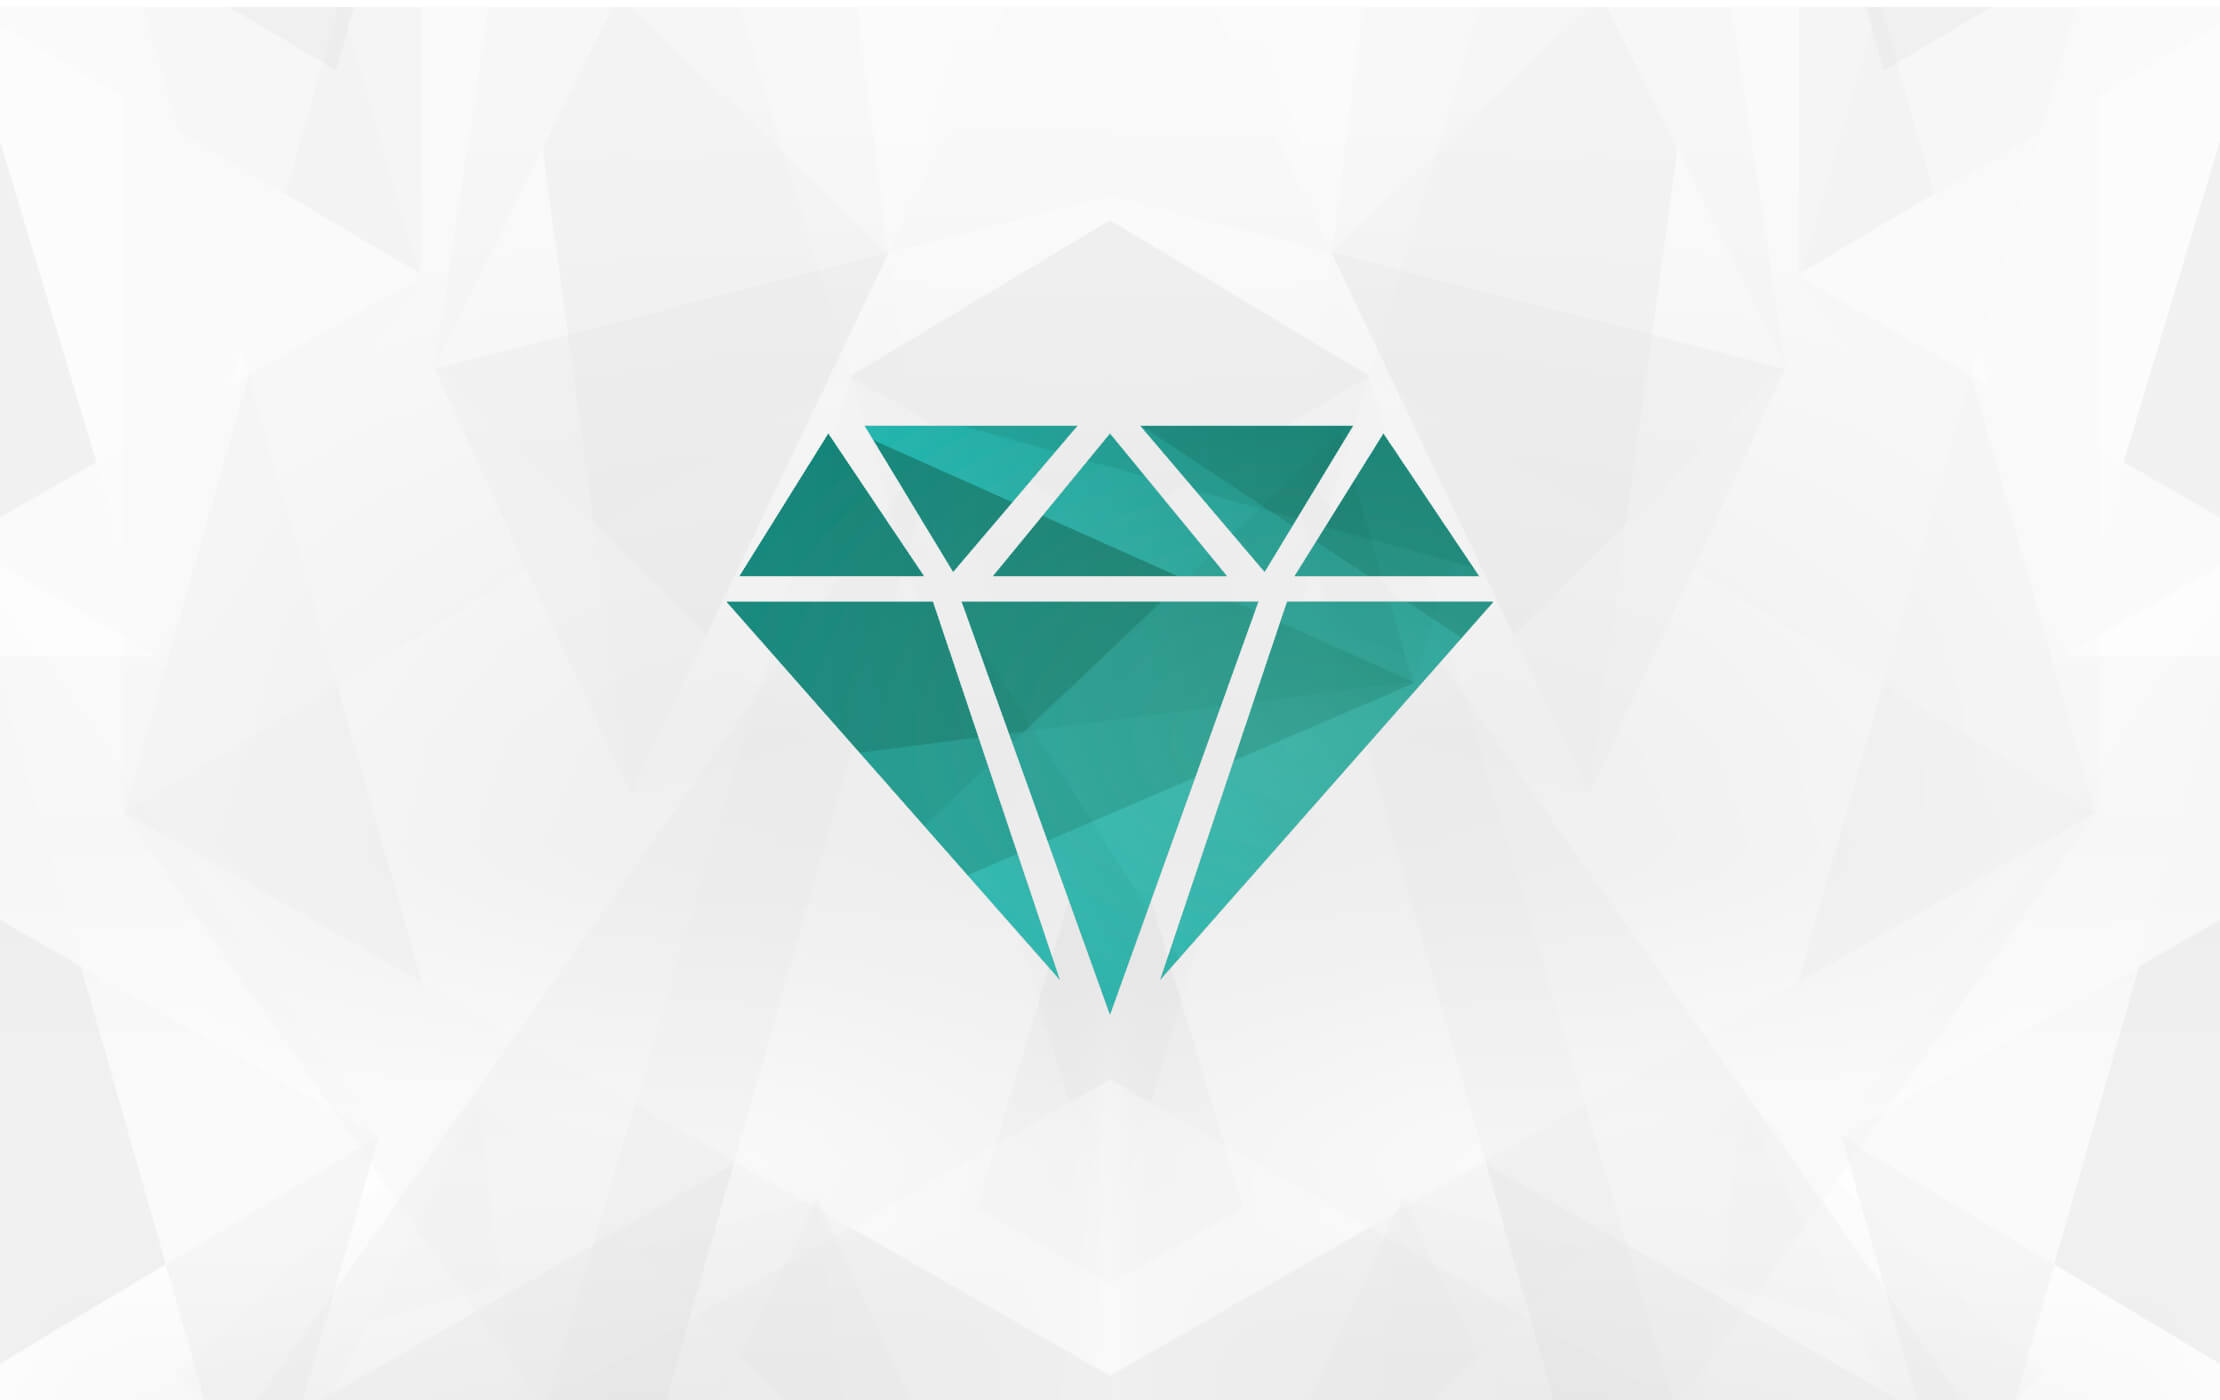 Simple vector shape of a diamond, coloured emerald green and split into triangles on a geometric light sand background